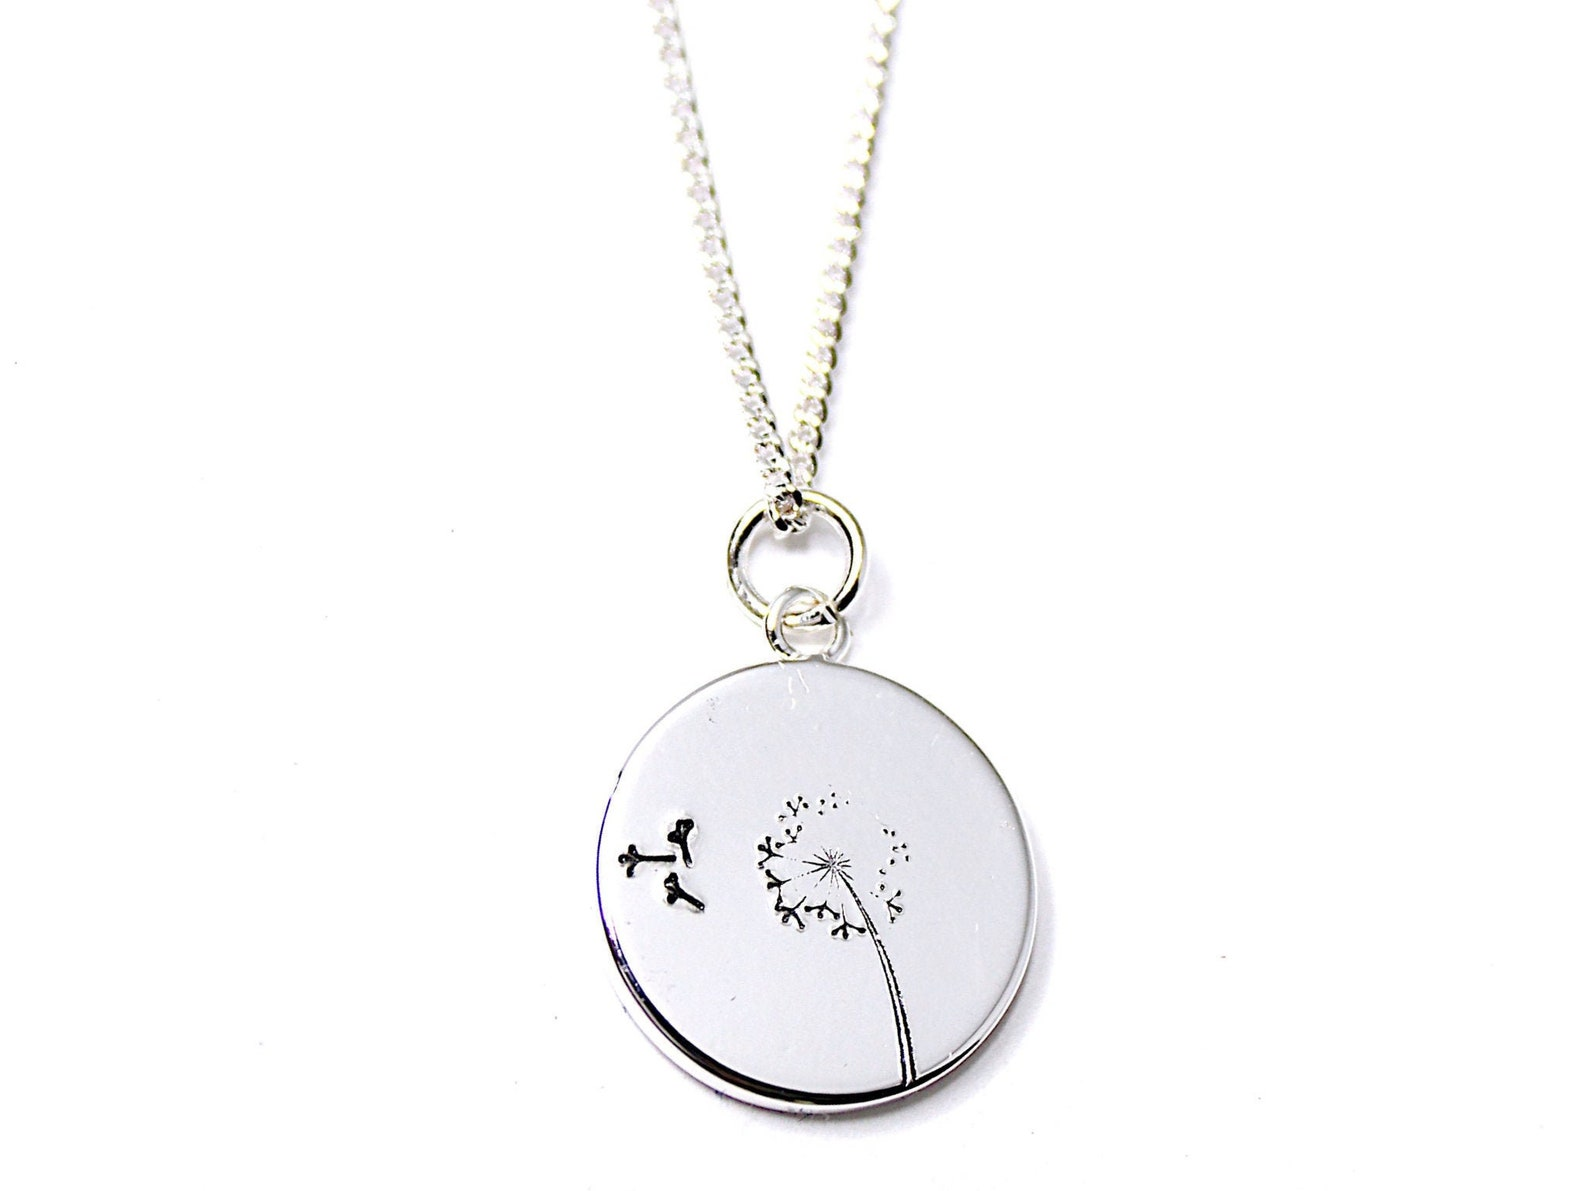 hand-stamped dandelion necklace for military kids who are known as dandelions